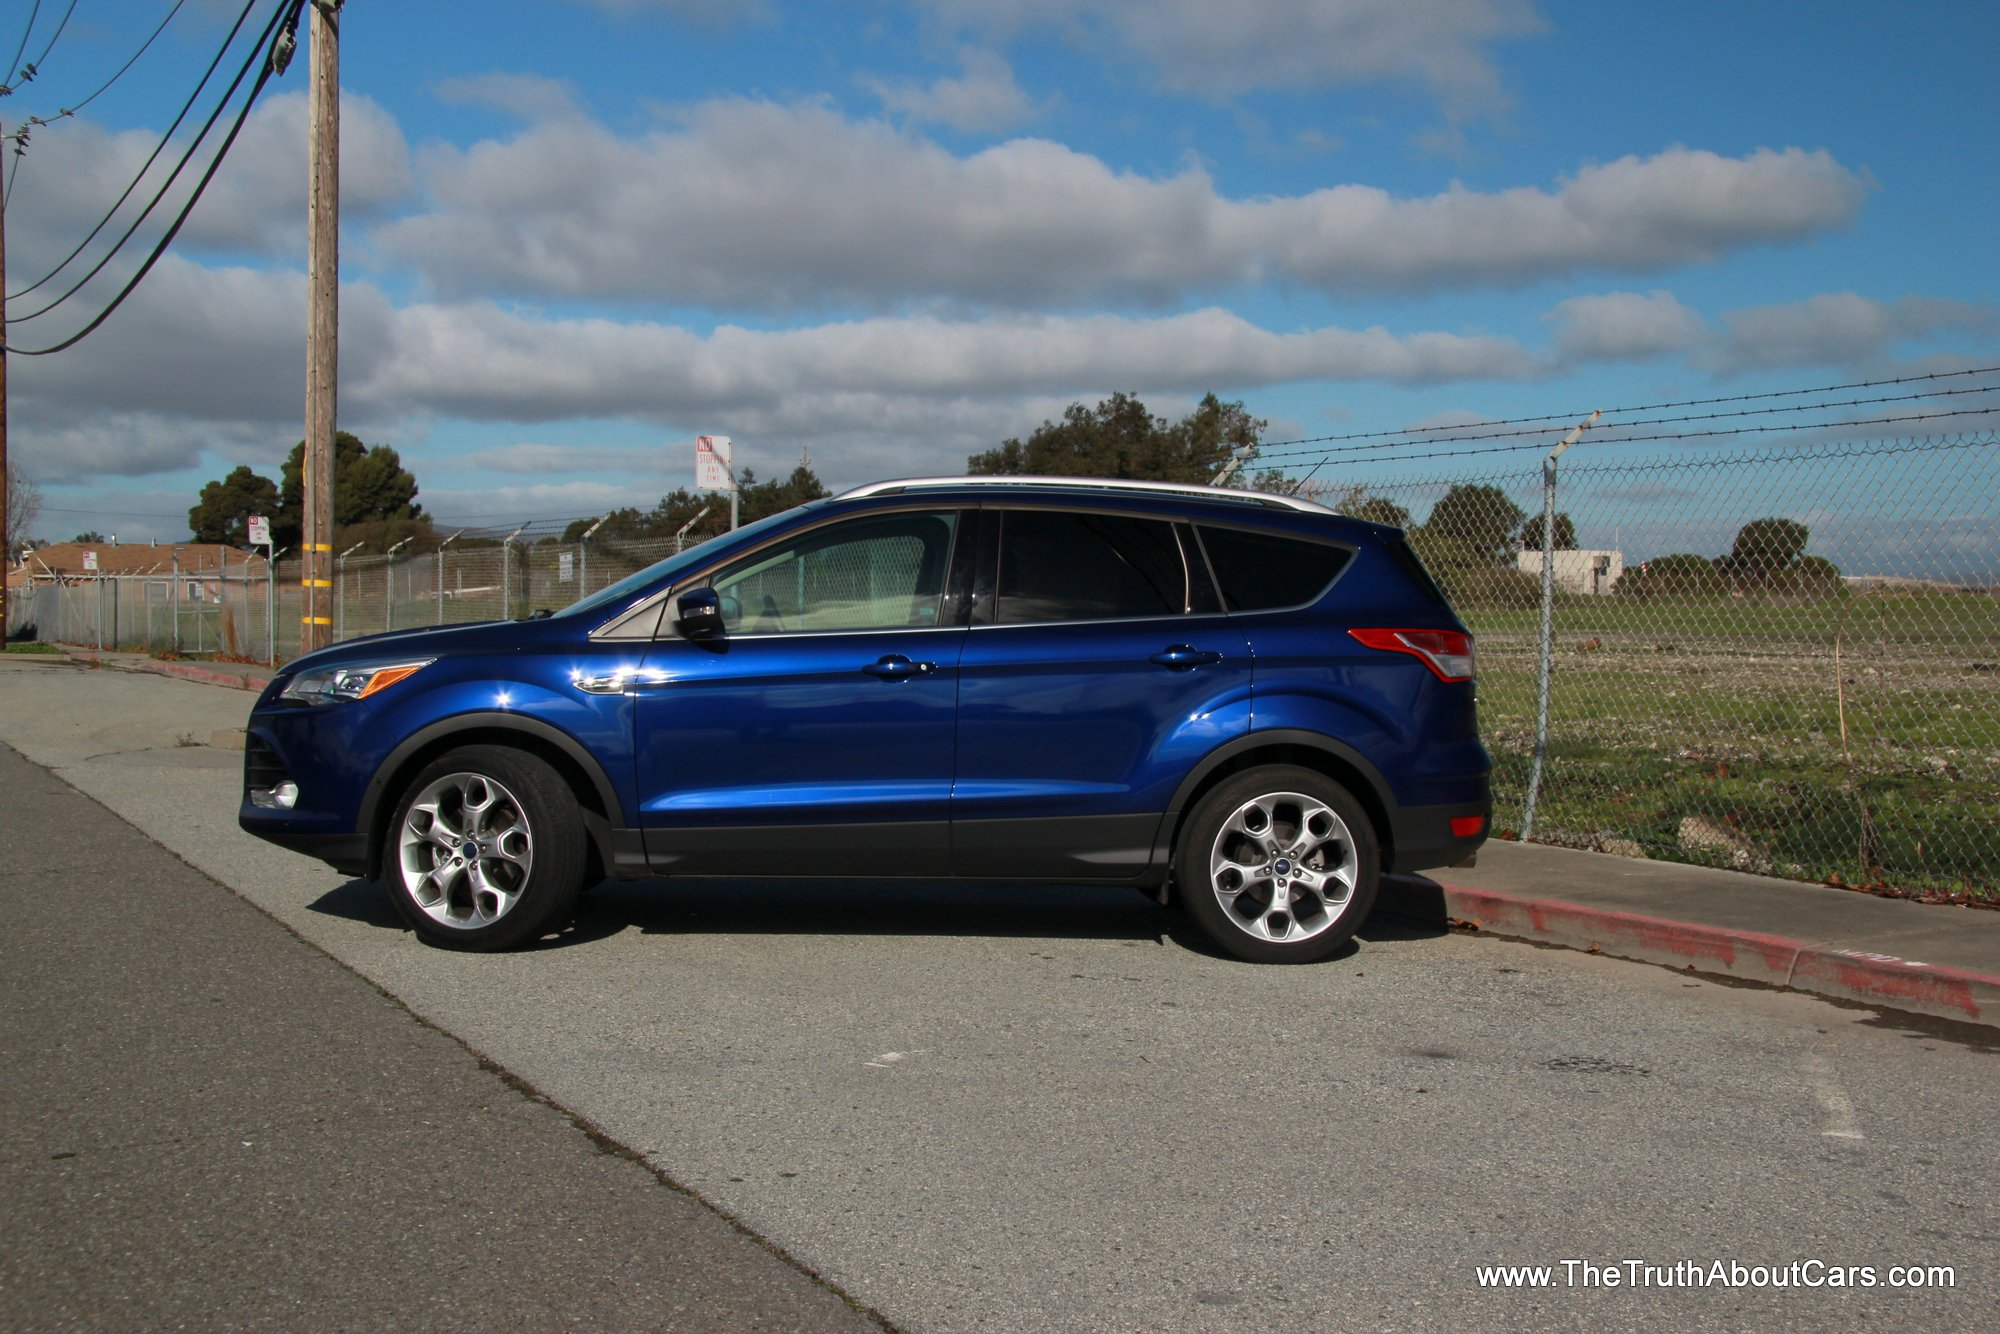 2013 ford escape titanium exterior side picture courtesy of alex l dykes